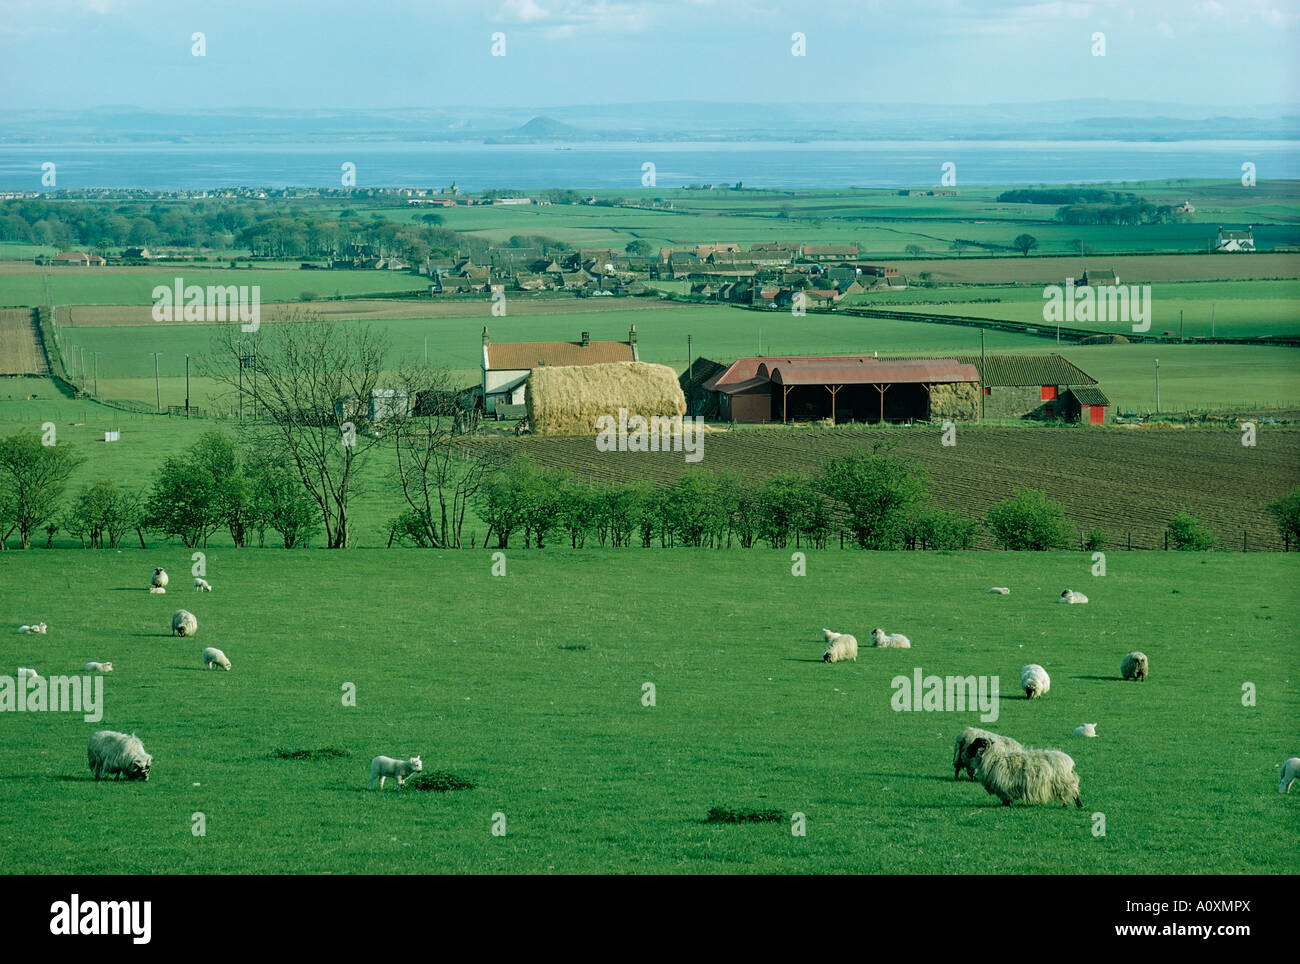 St Monage with Firth of Forth in the distance Fifeshire Scotland United Kingdom Europe - Stock Image